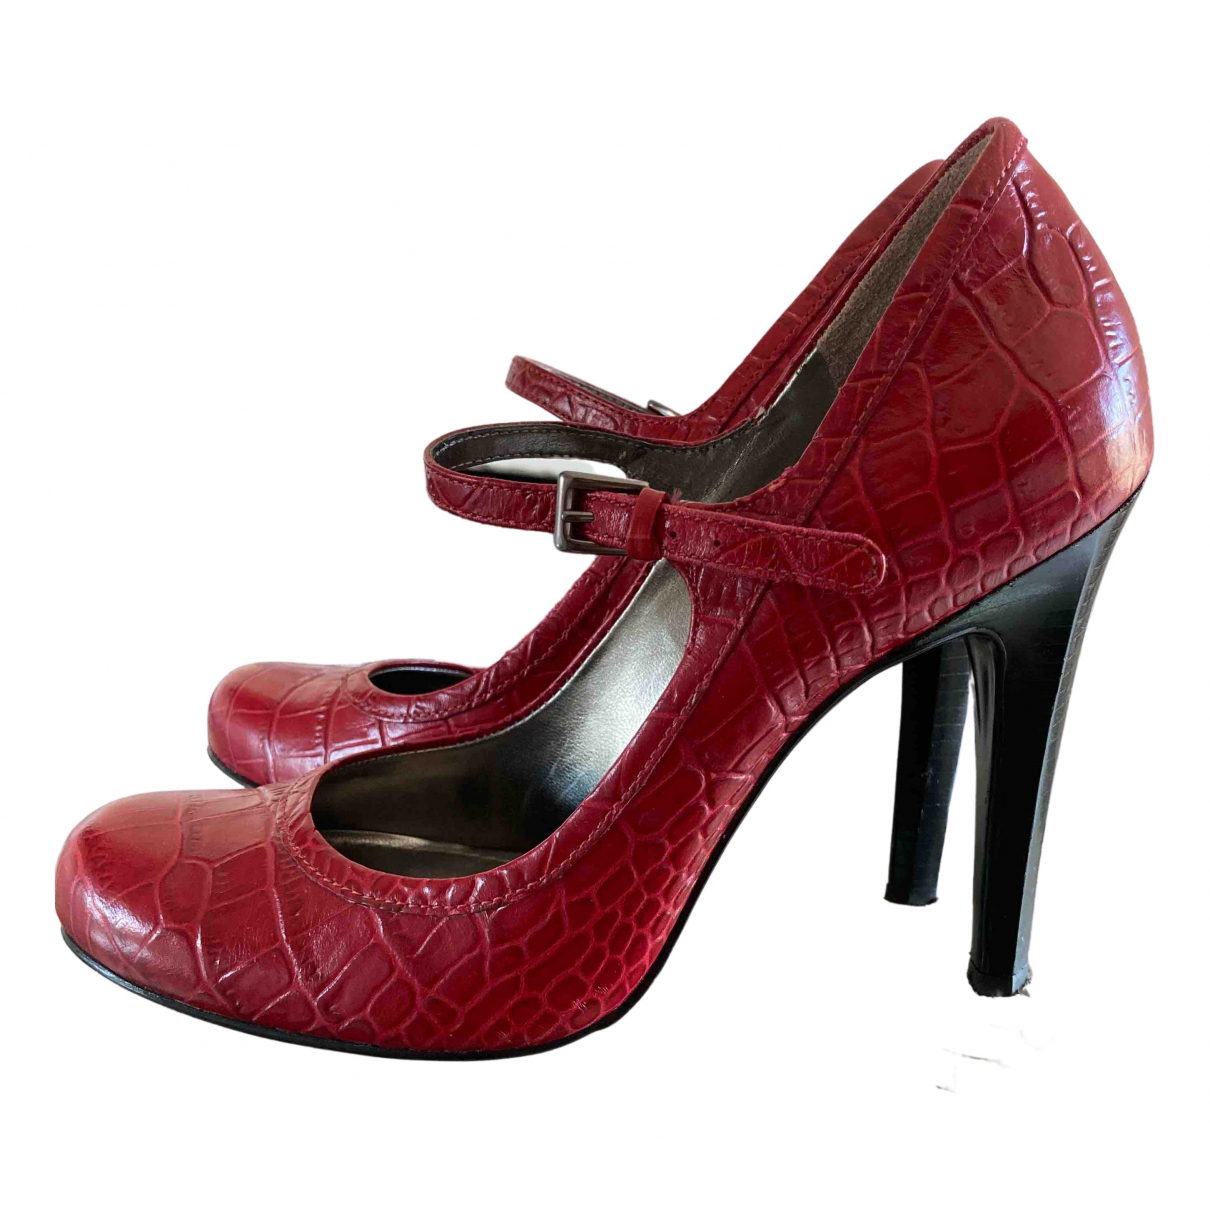 Guess \N Red Leather Heels for Women 38 EU